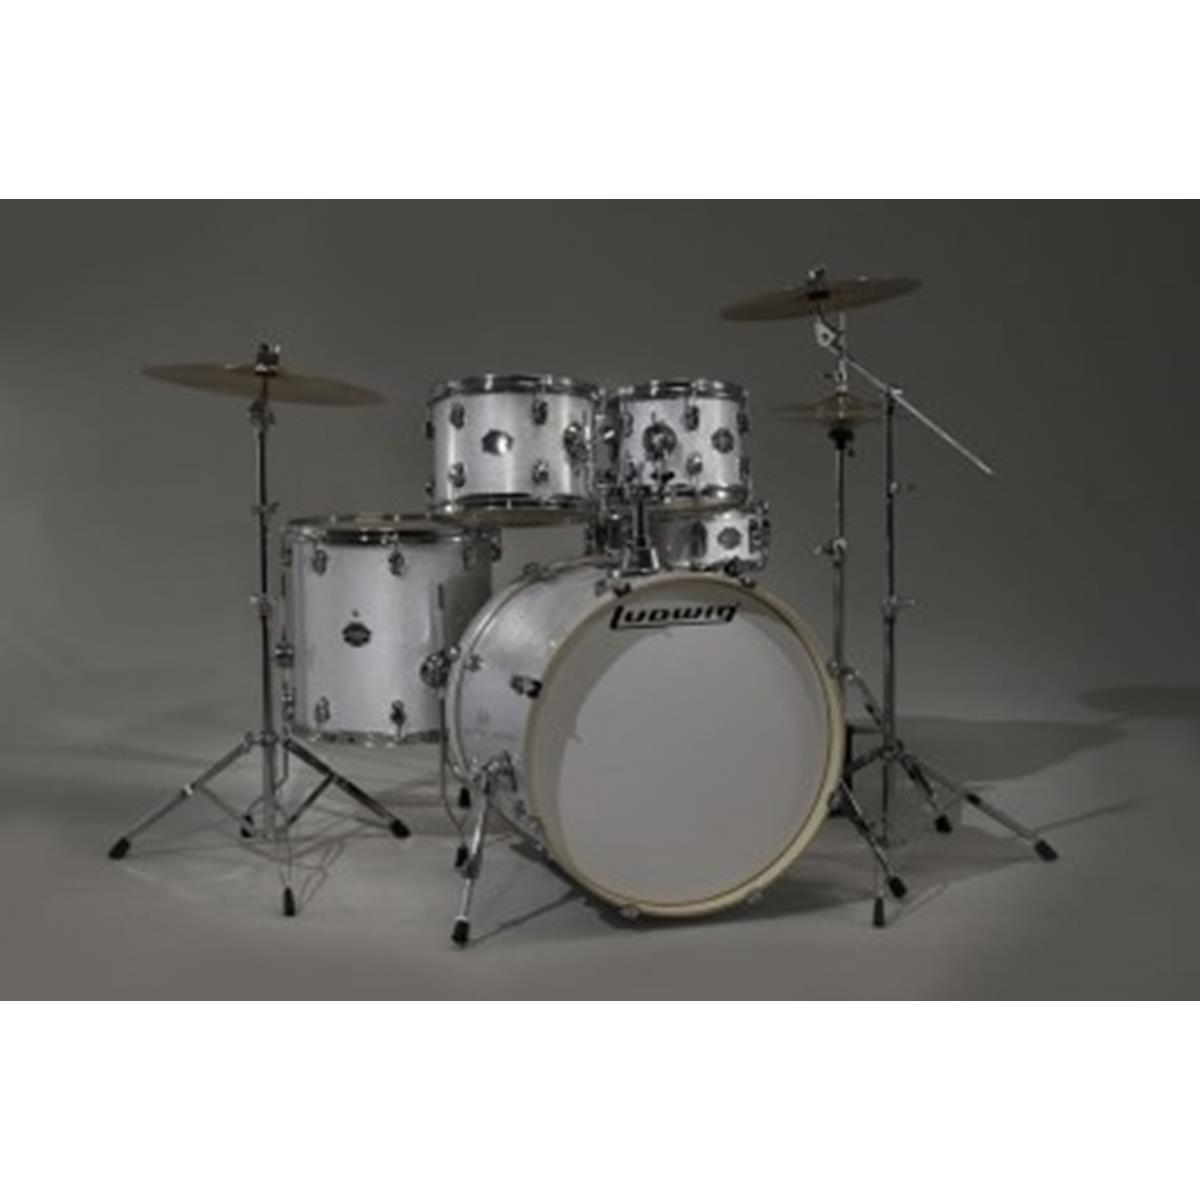 LUDWIG LCF50P-28 - Element Pop White Sparkle 10/12/14/20/14 - Batterie / Percussioni Batterie - Batterie Acustiche (set)